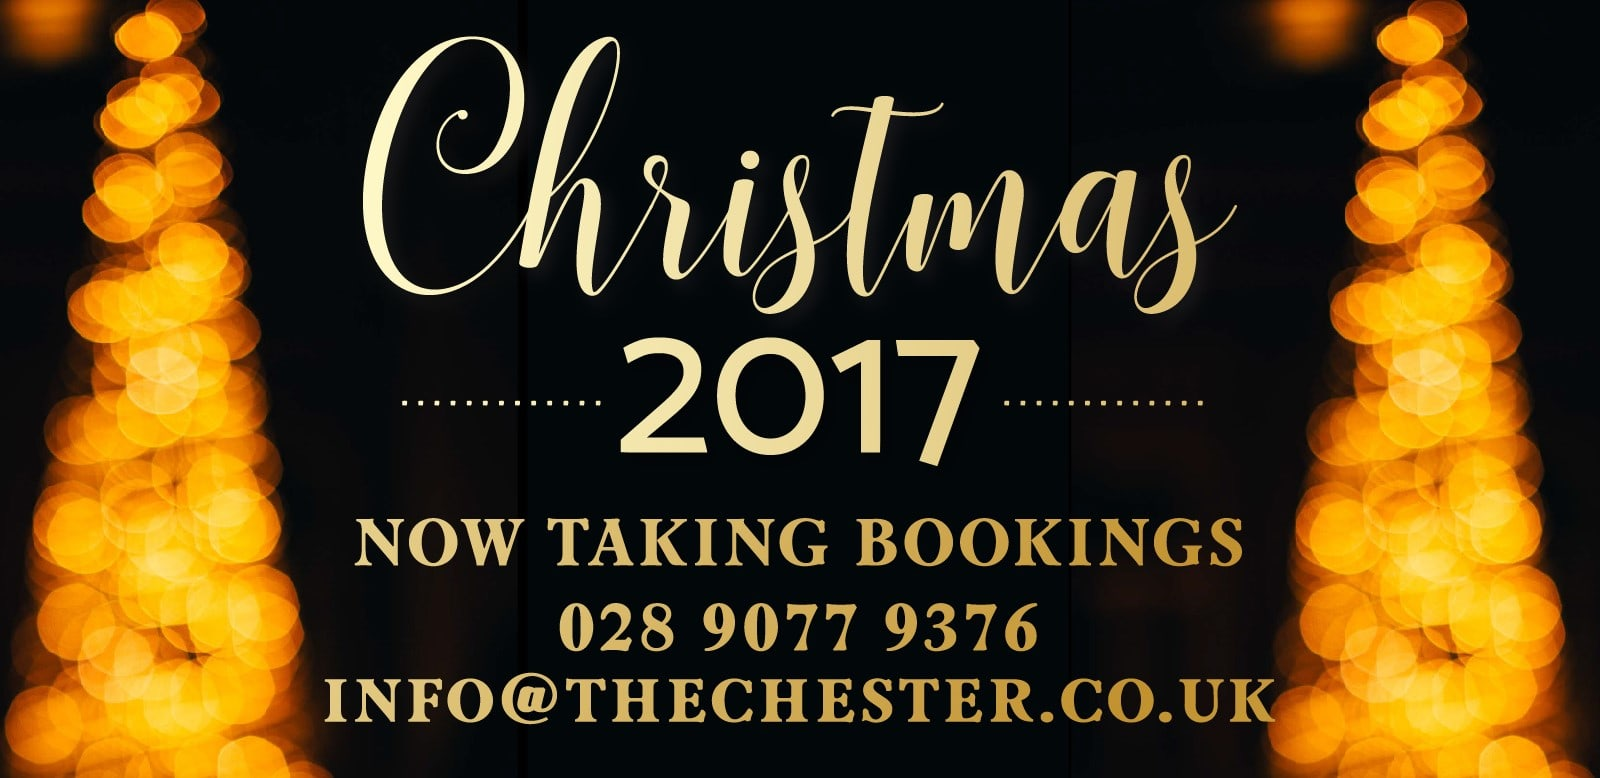 Book now for Christmas 2017 at the Chester